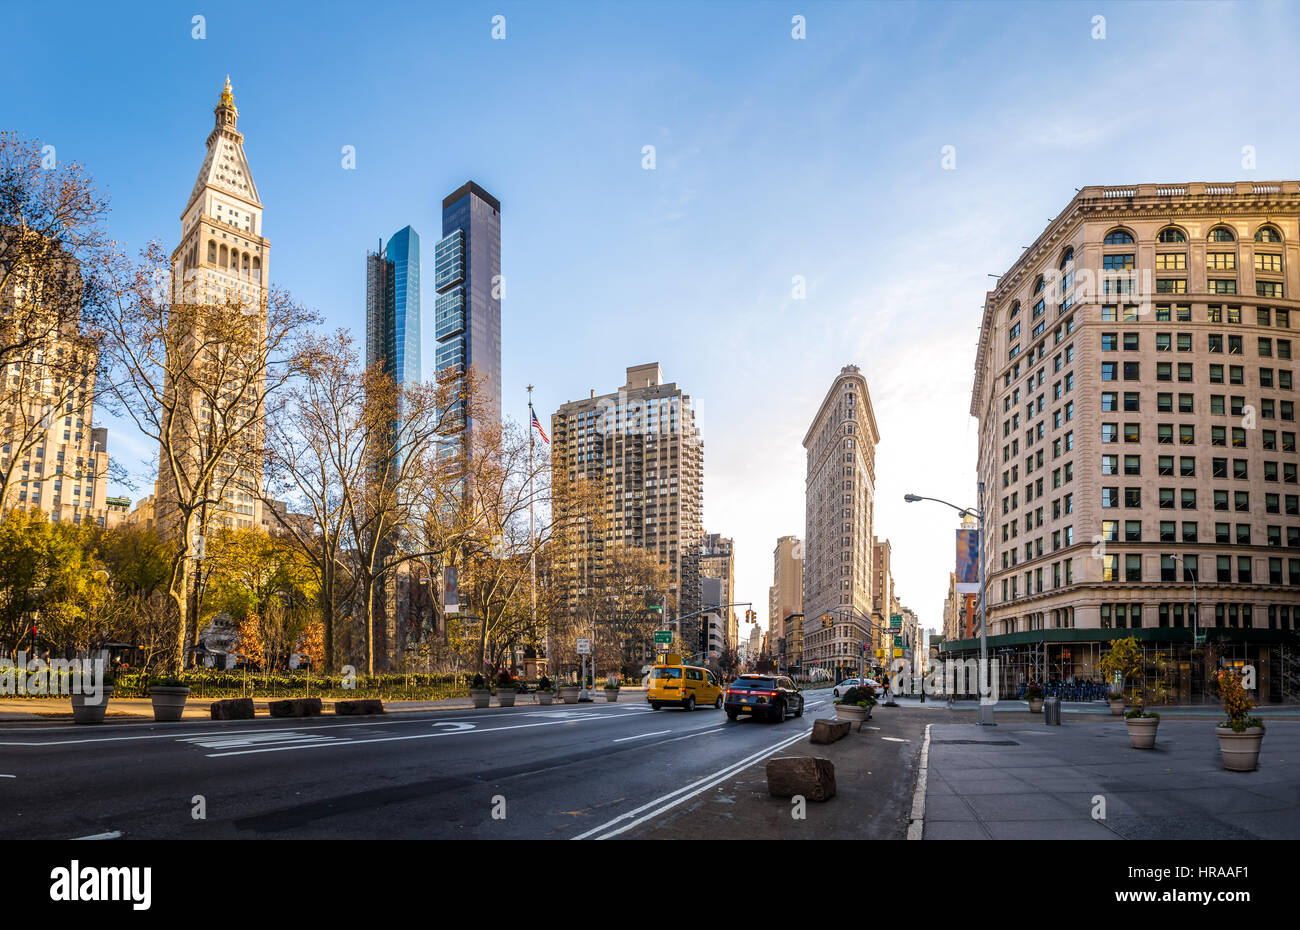 Buildings around Madison Square Park - New York City, USA - Stock Image